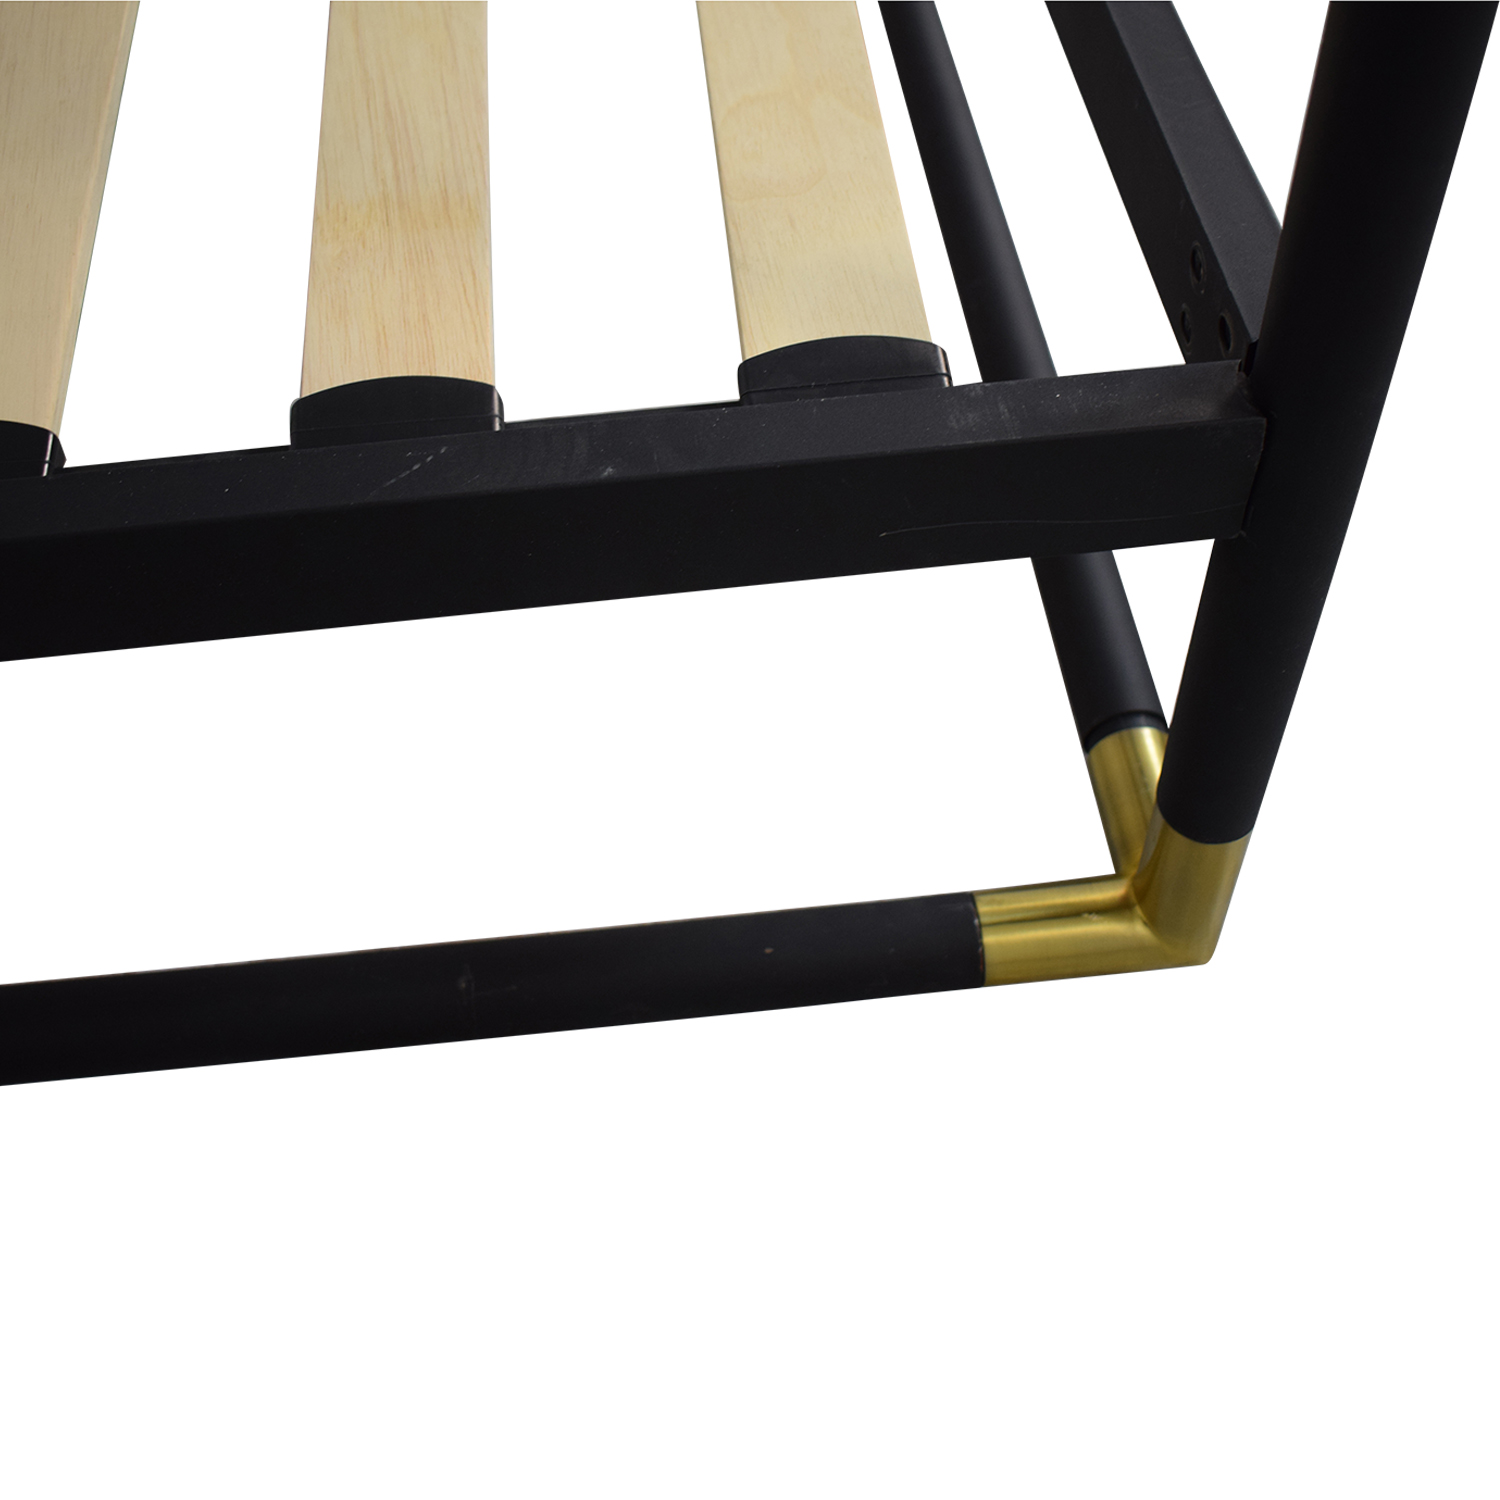 CB2 CB2 Frame Canopy Queen Bed Beds